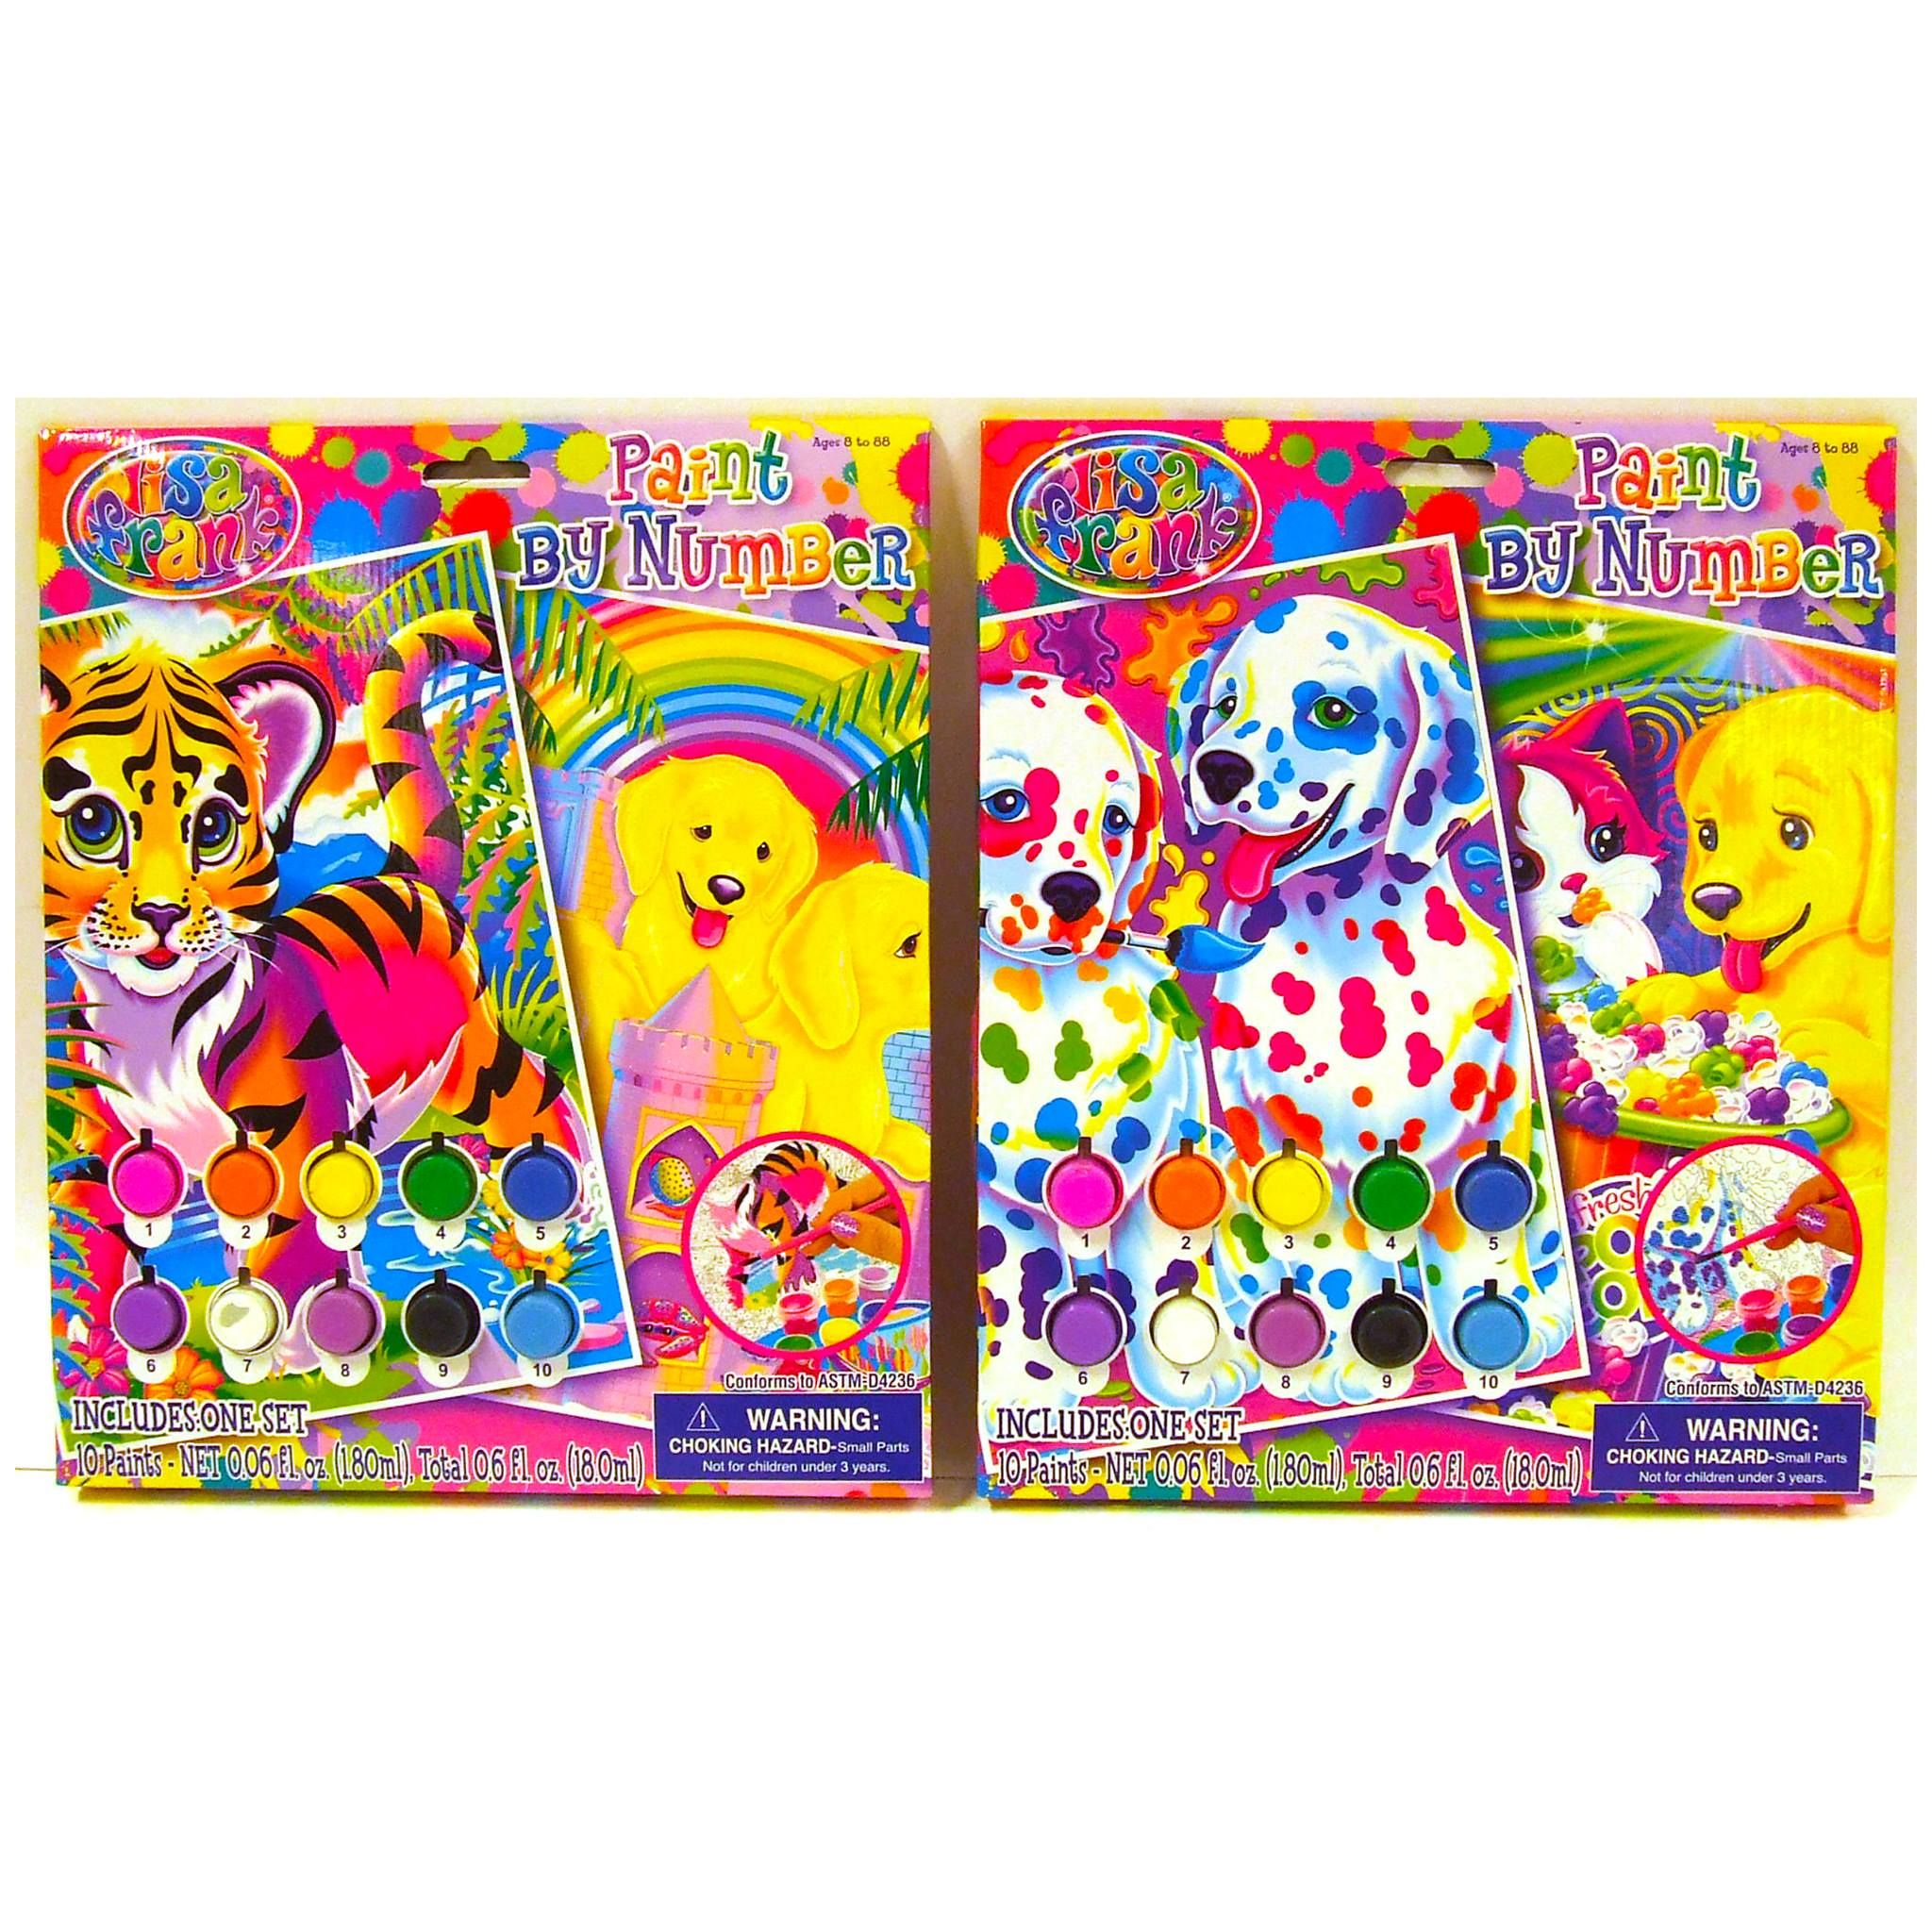 Check Out The Lisa Frank Paint By Number Available At Dollar General Lisa Frank Stickers Lisa Frank Lisa Frank Clothing